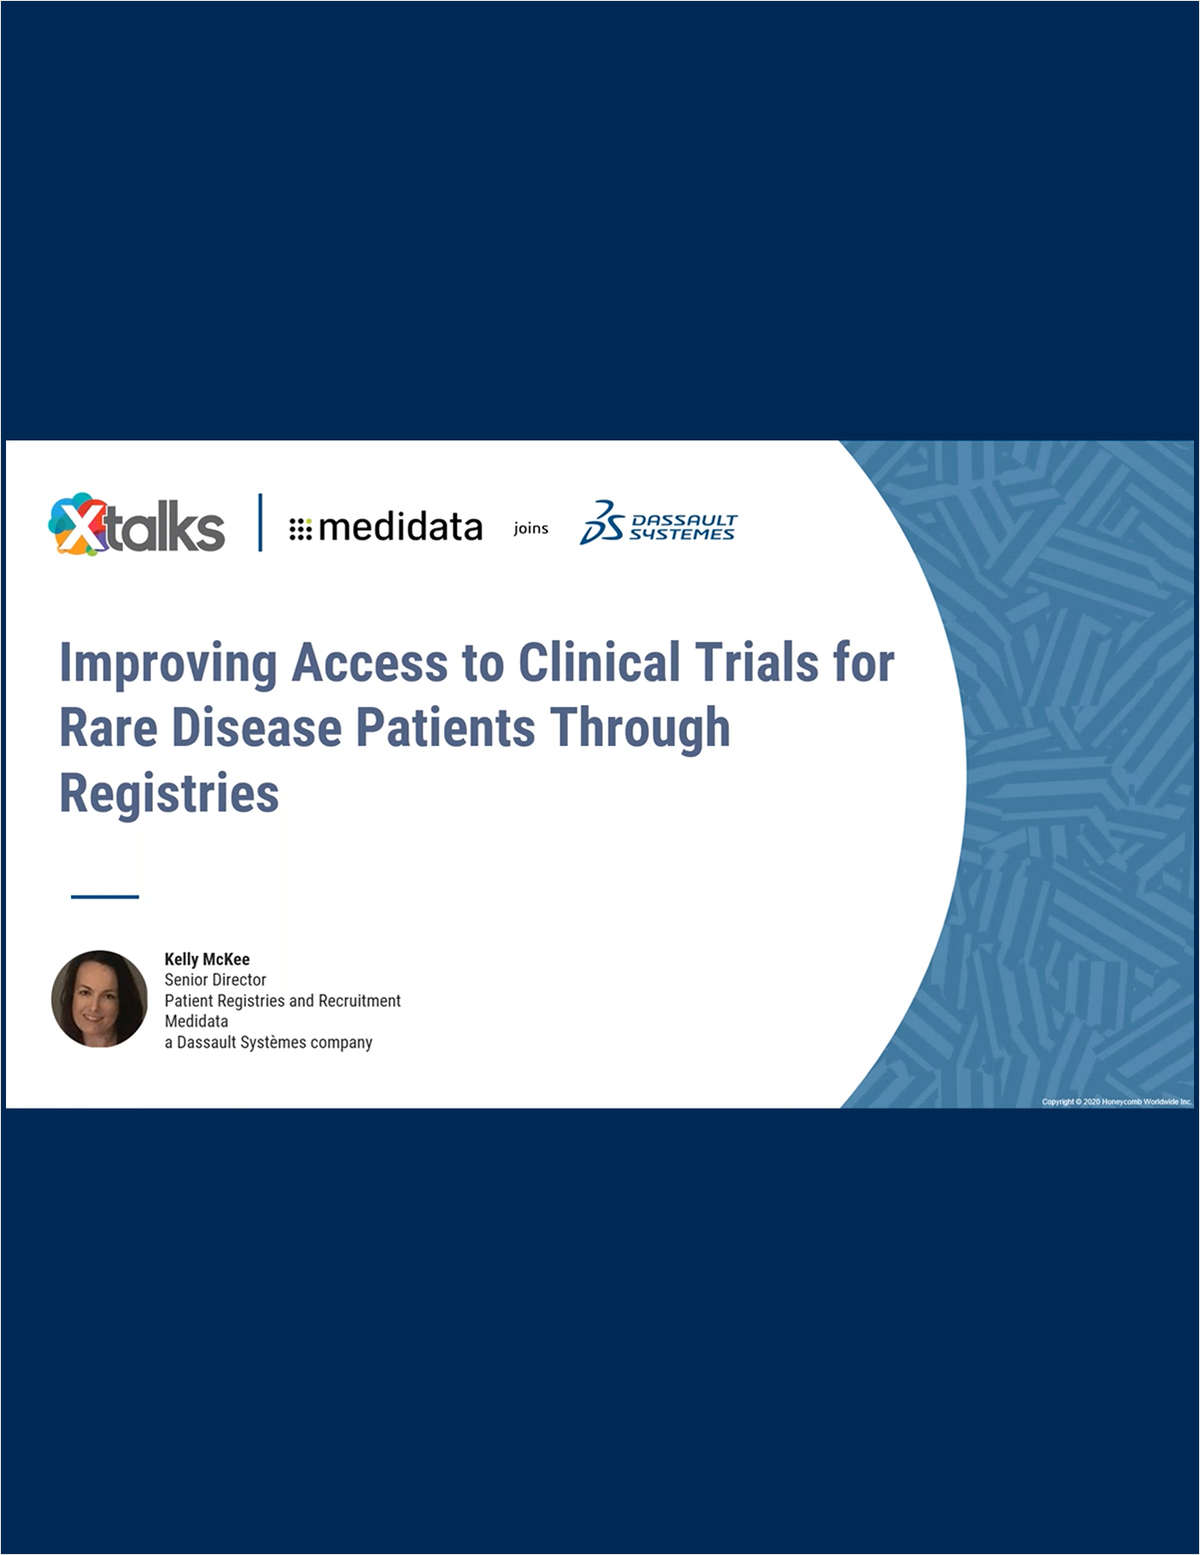 Improving Access to Clinical Trials for Rare Disease Patient Through Registries